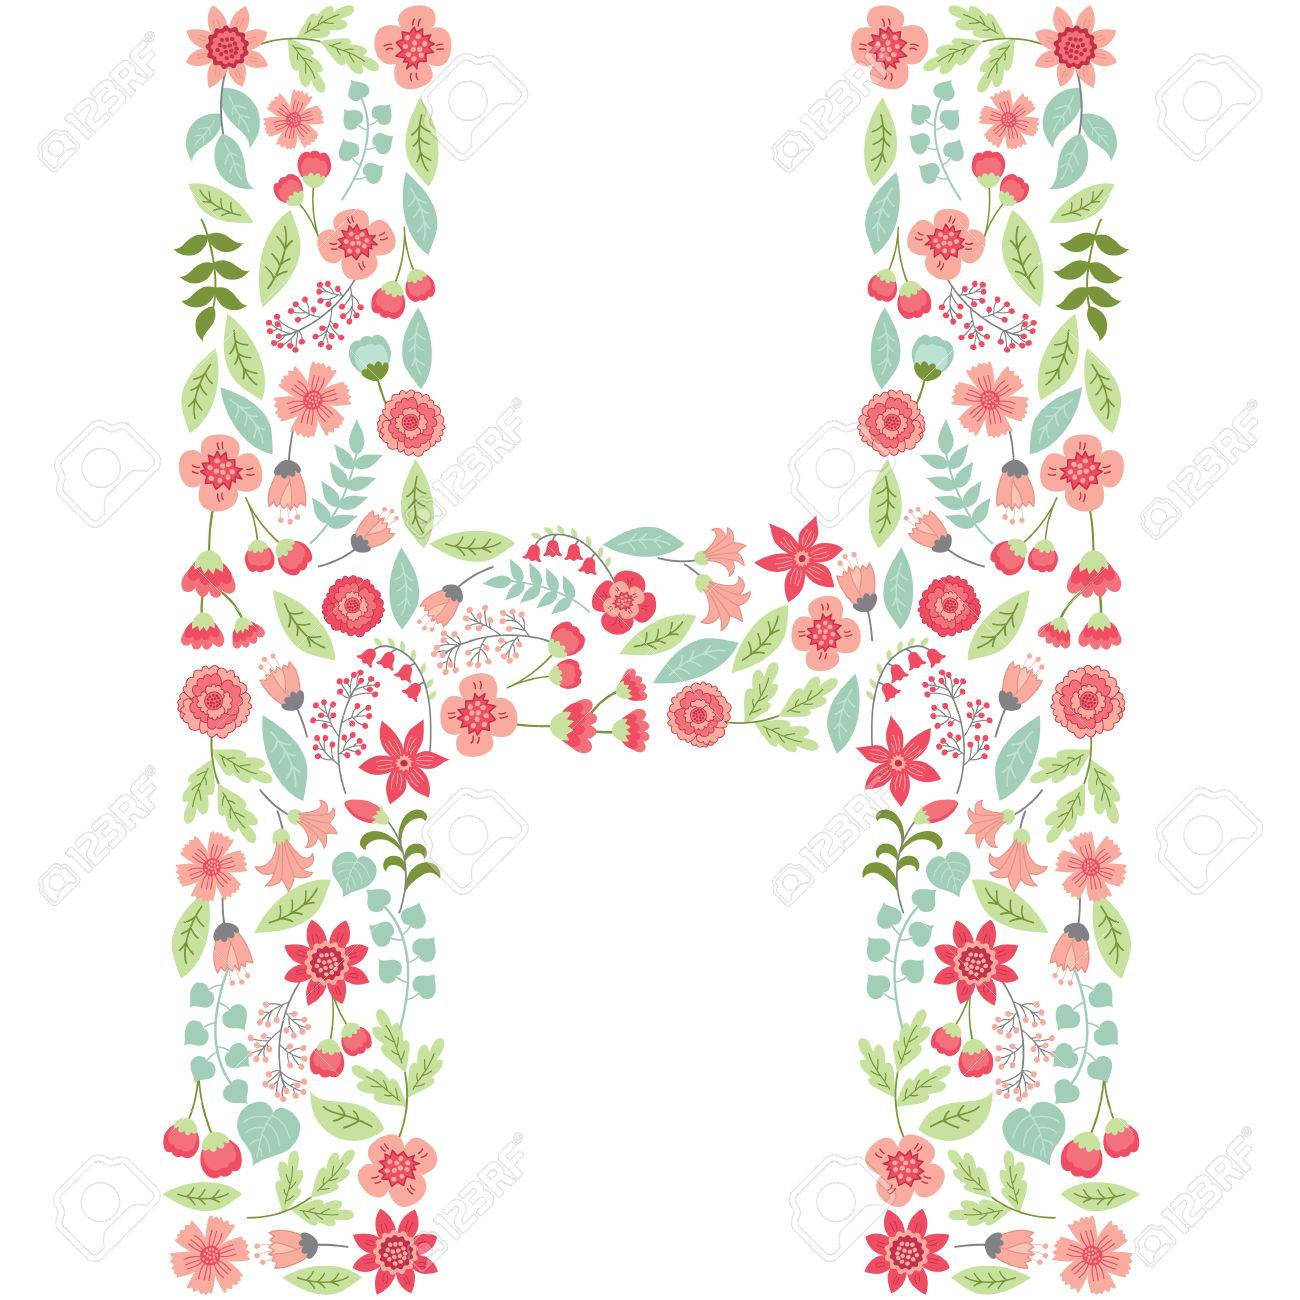 vector floral letter h the capital letter h is made of floral